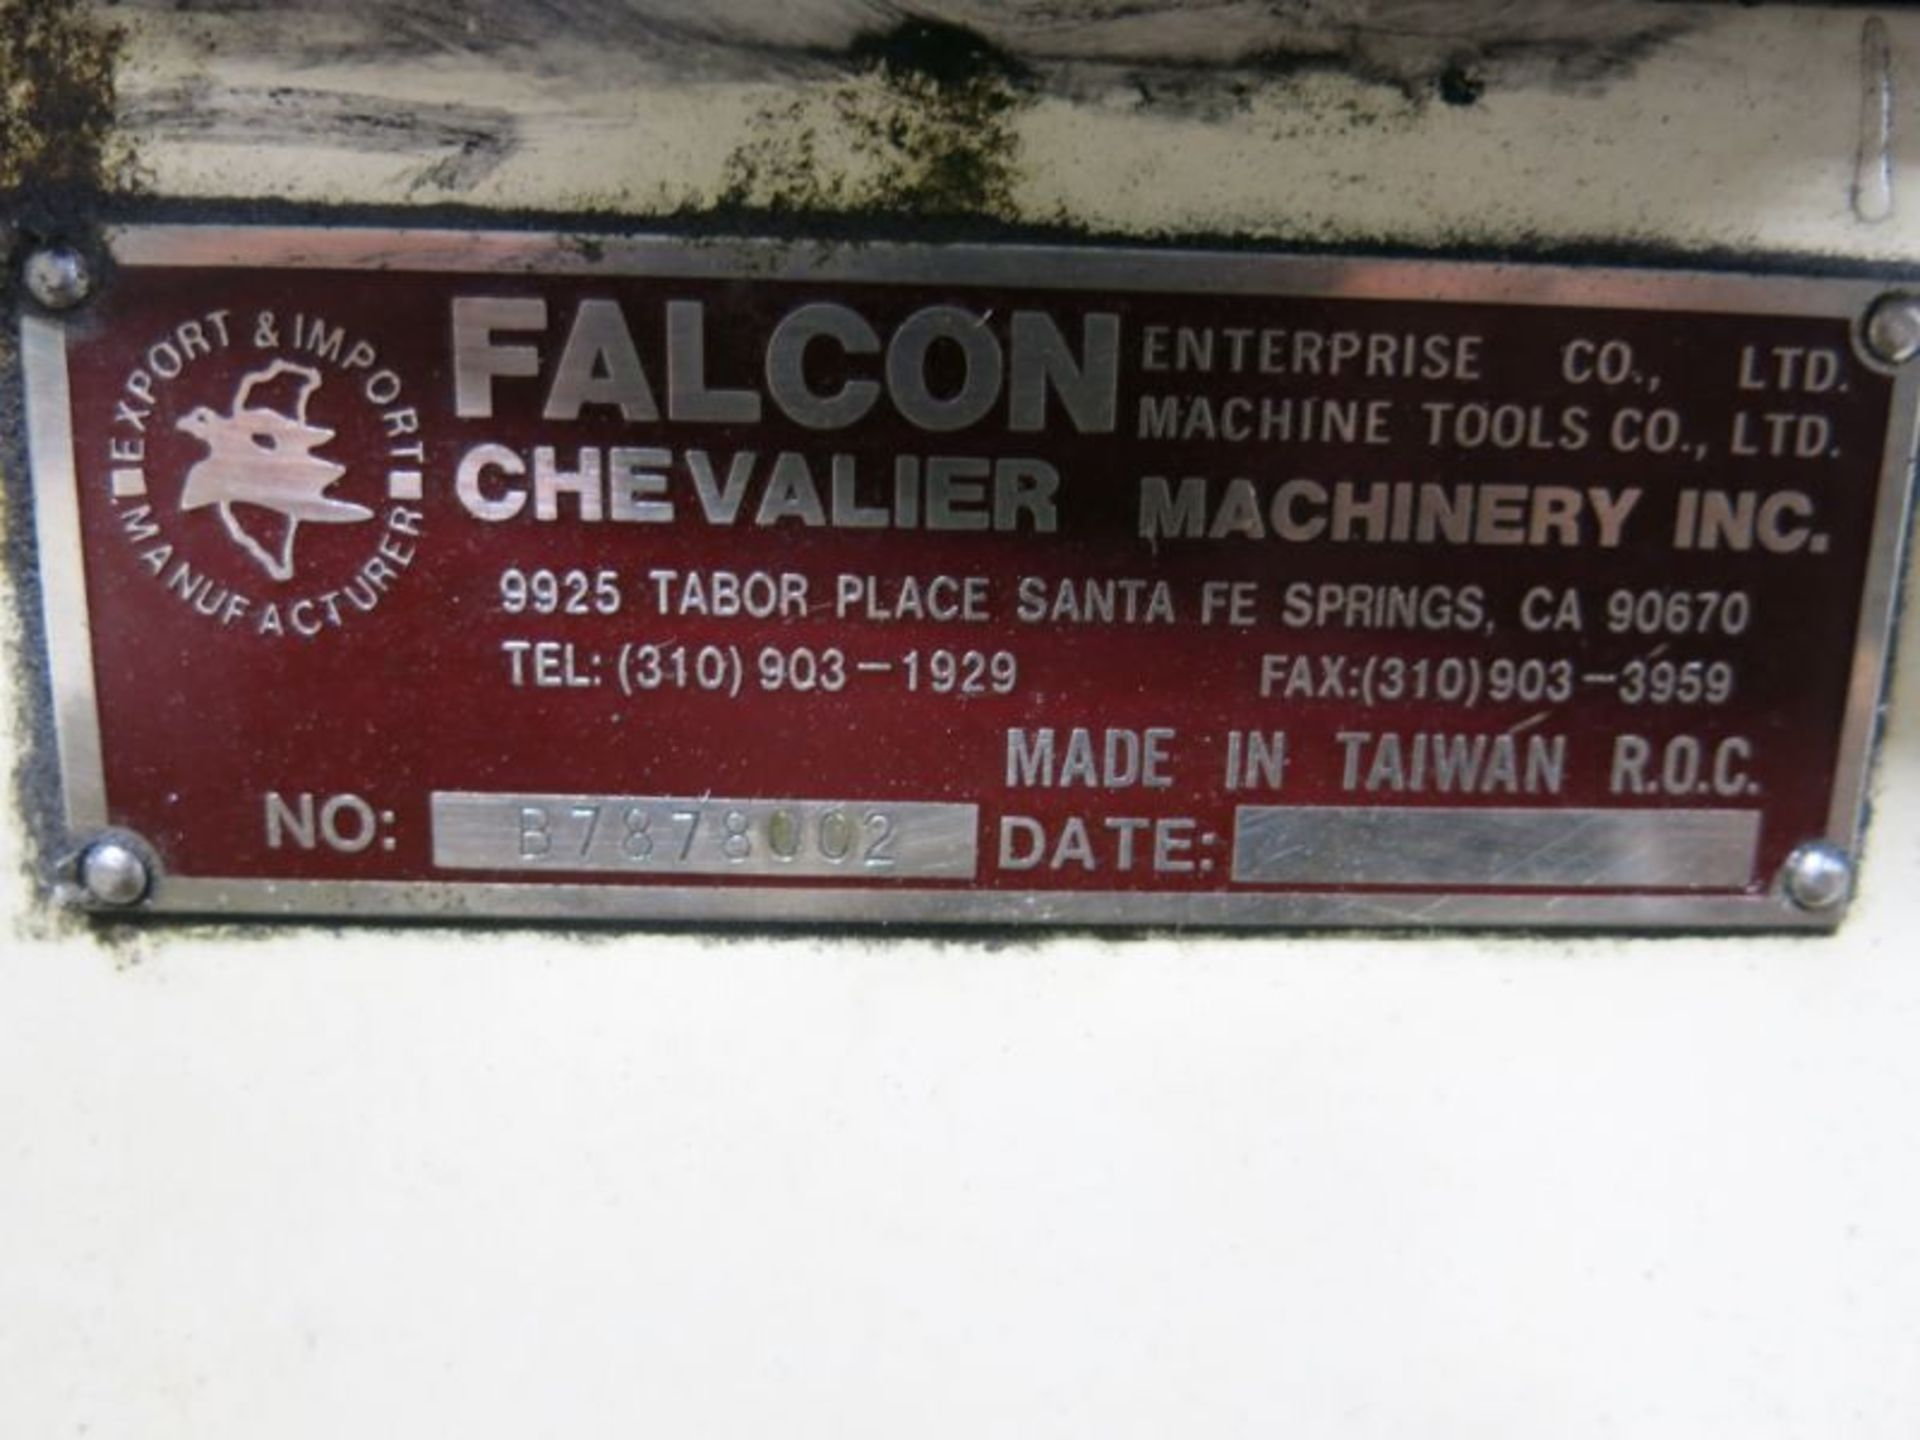 1998 Chevalier/Falcon Surface Grinder - Image 4 of 4